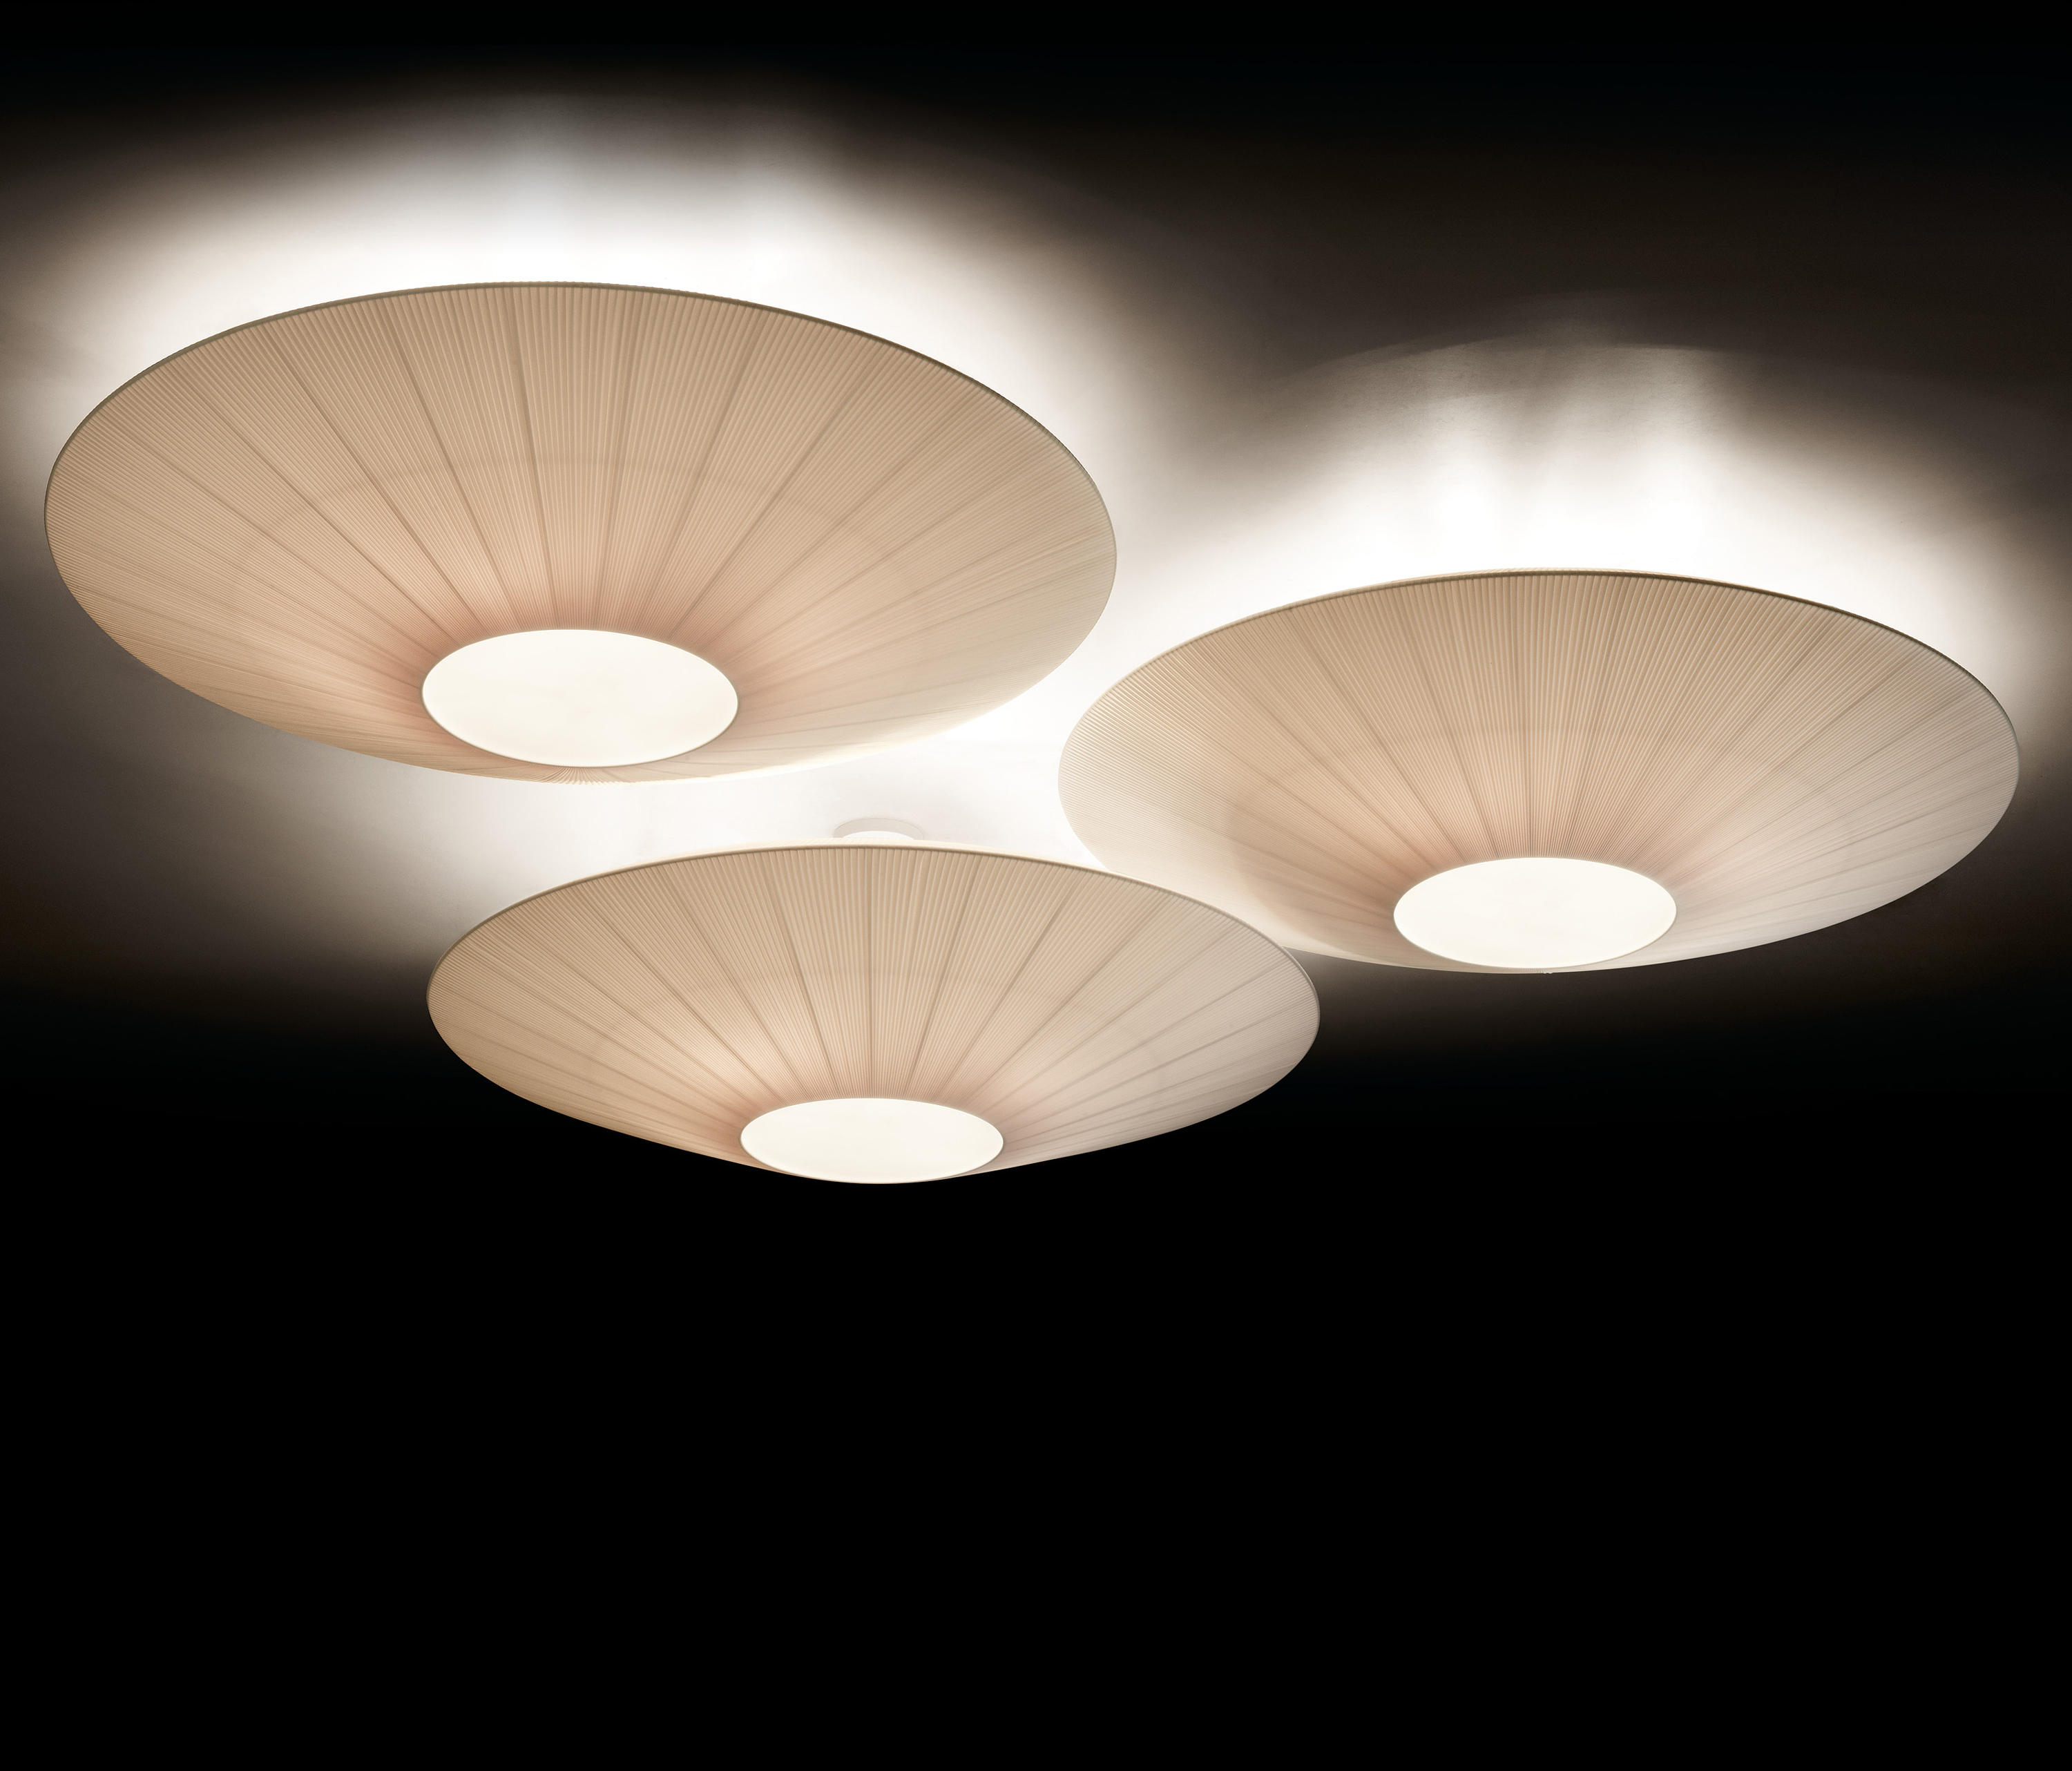 SIAM 200 CEILING LIGHT - General lighting from BOVER | Architonic